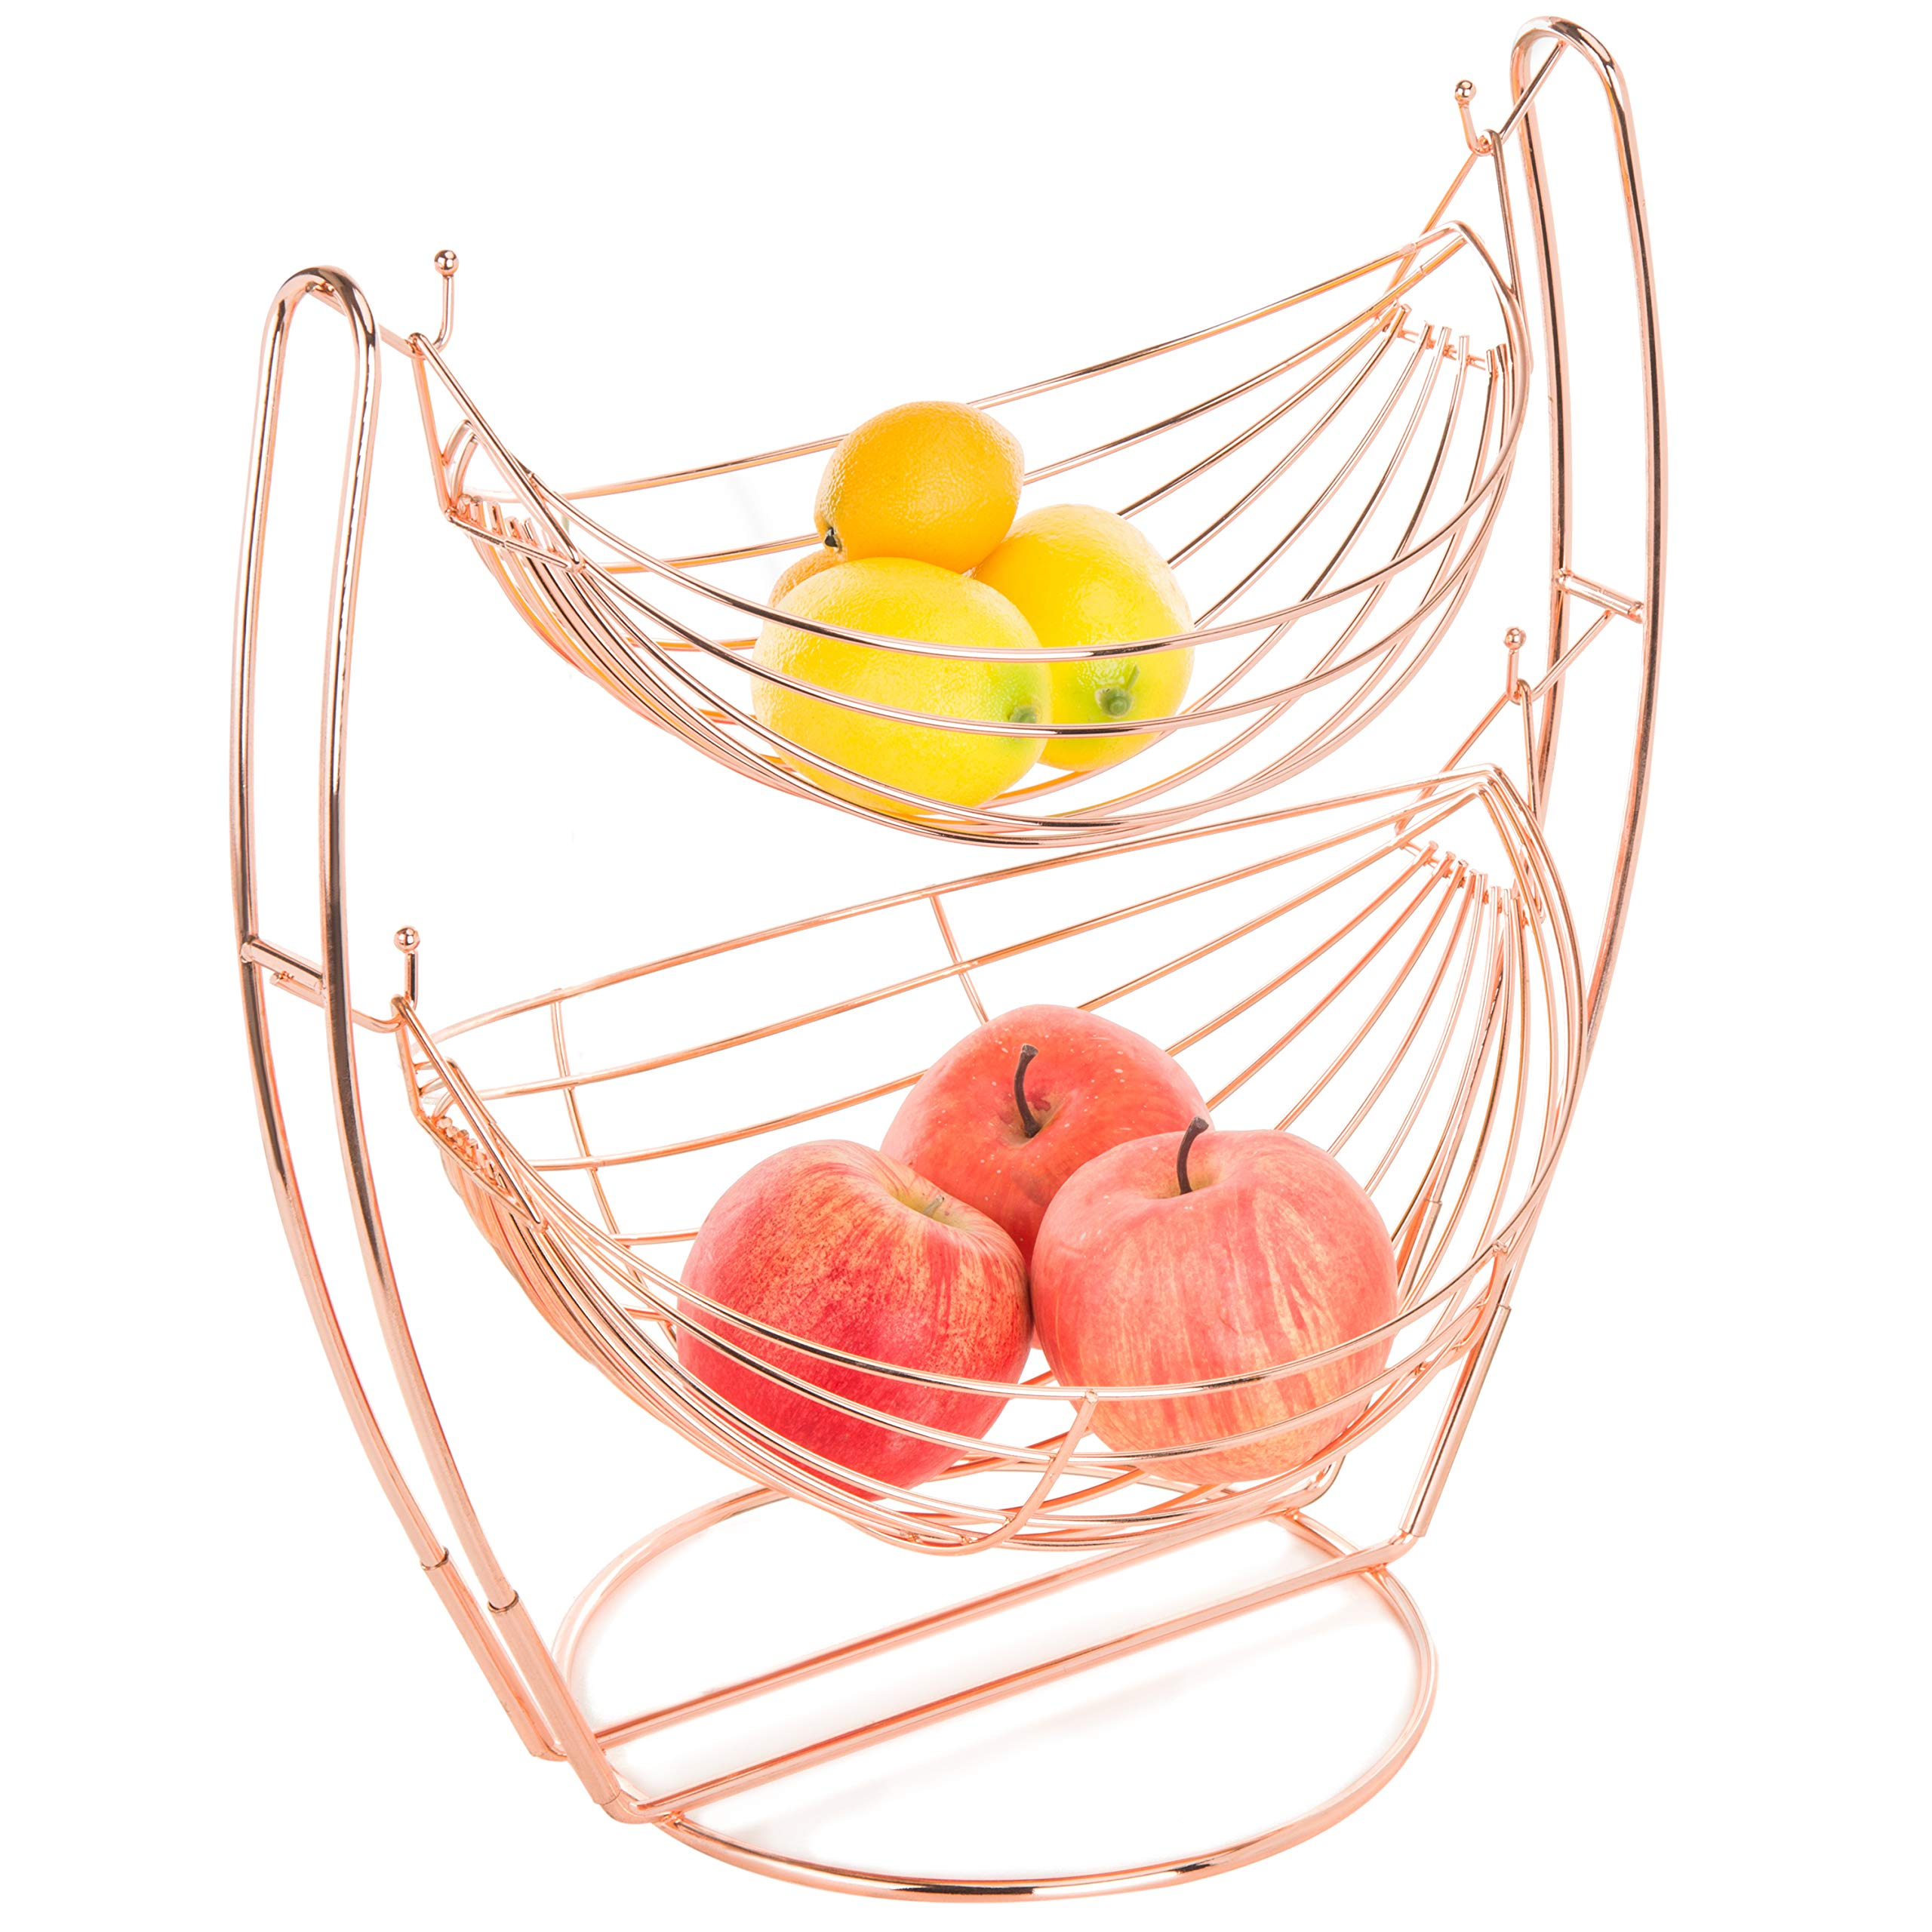 MyGift Rose Gold-Tone Metal 2-Tier Hammock-Style Fruits & Produce Basket Rack